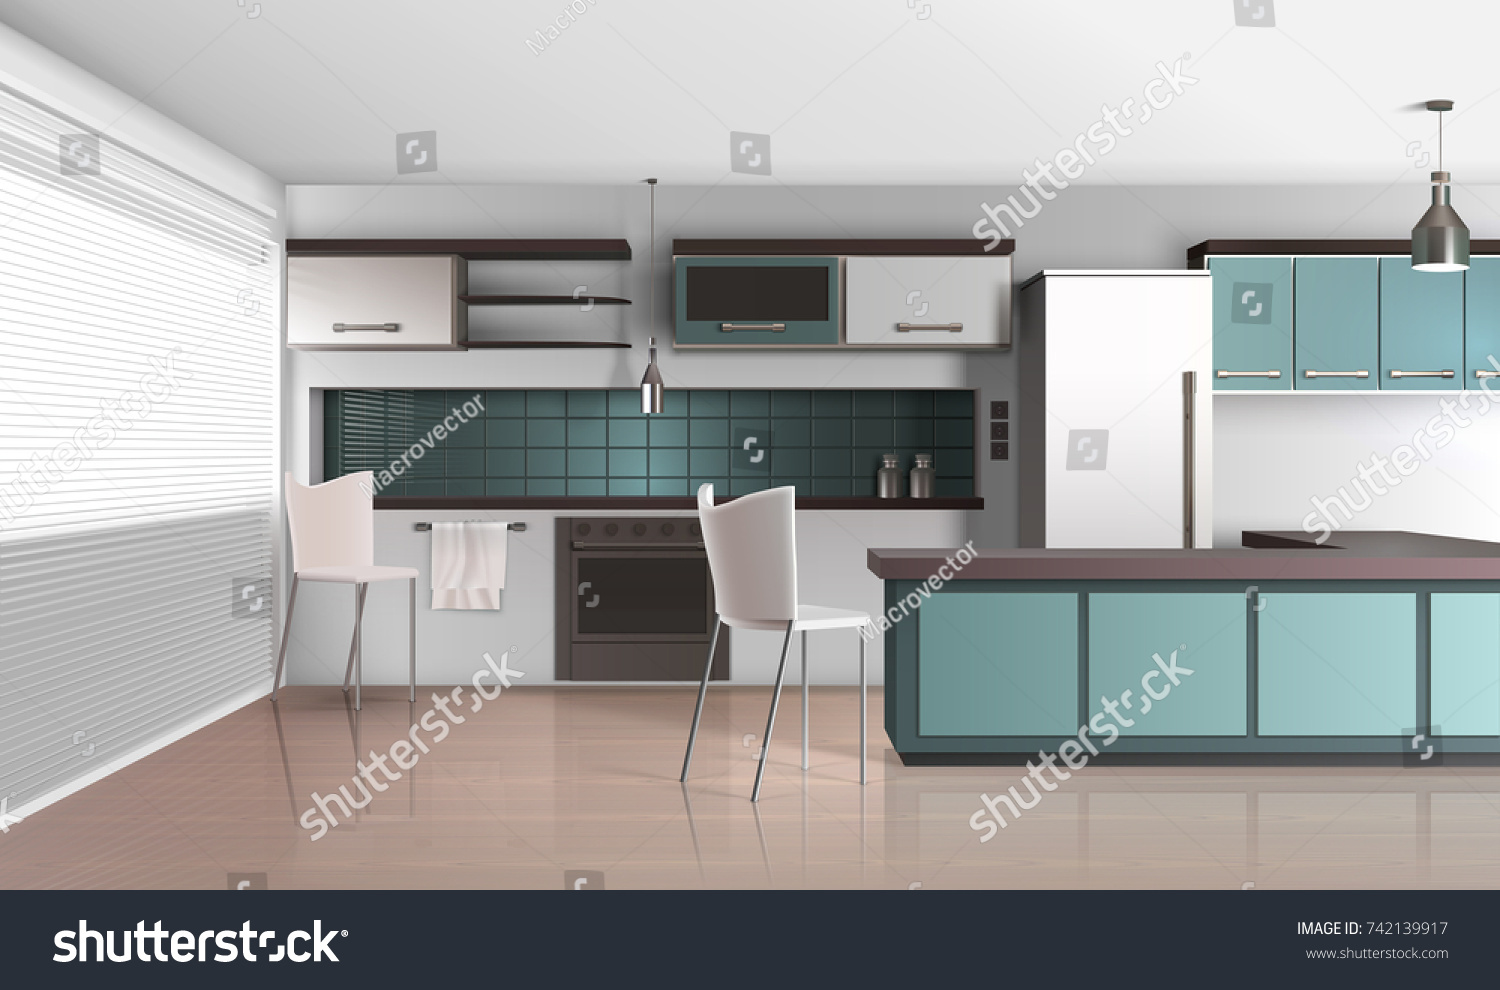 Modern Kitchen Interior Realistic Design Composition With Venetian Shutter  Blinds Laminated Flooring Fridge And Cooking Facilities